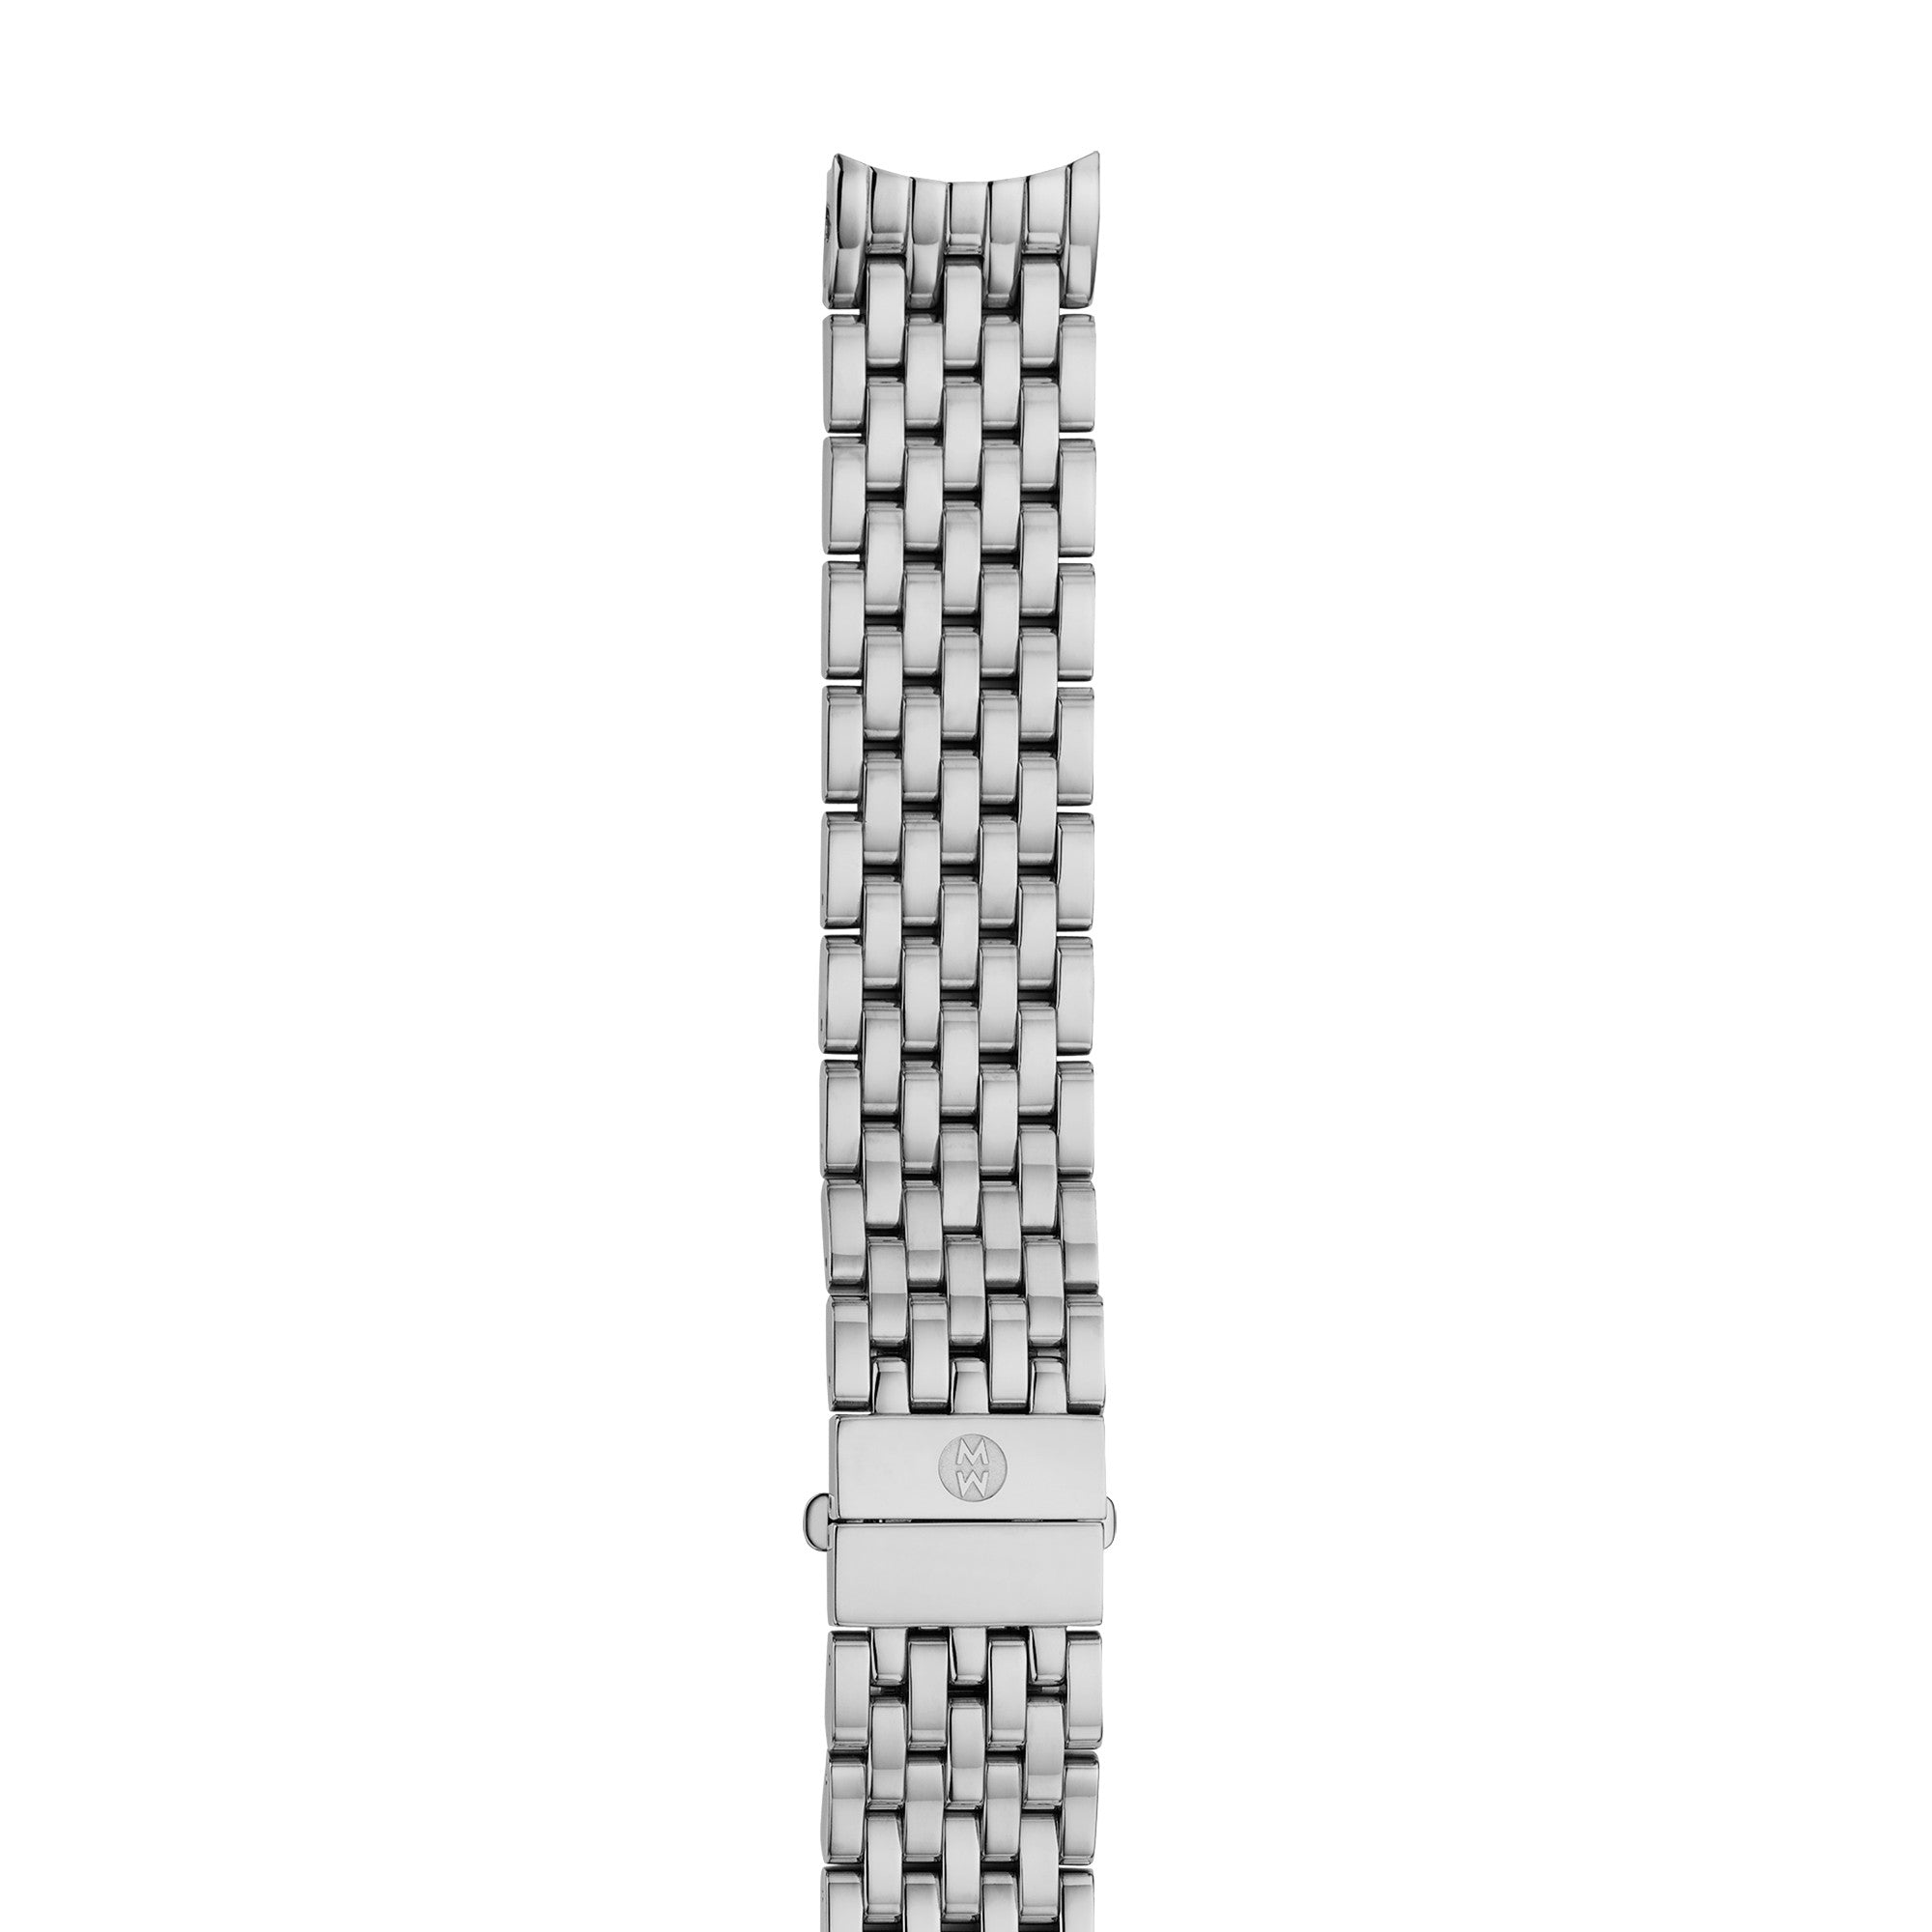 16mm Serein 16 7-Link Stainless Steel Bracelet